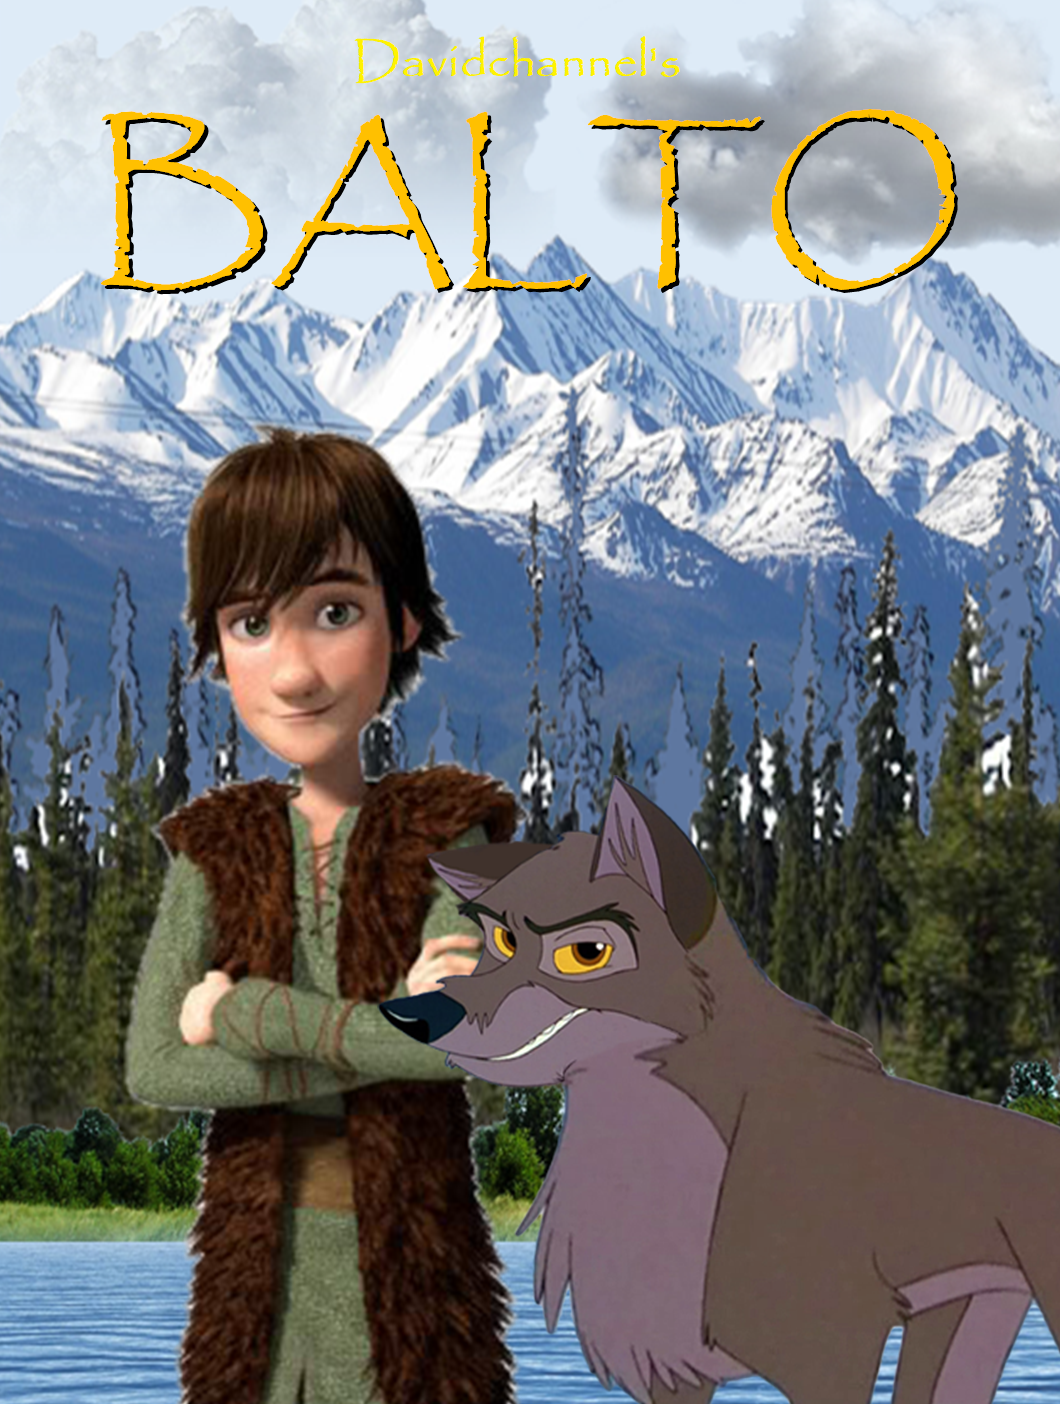 Balto (White Fang; 1991)